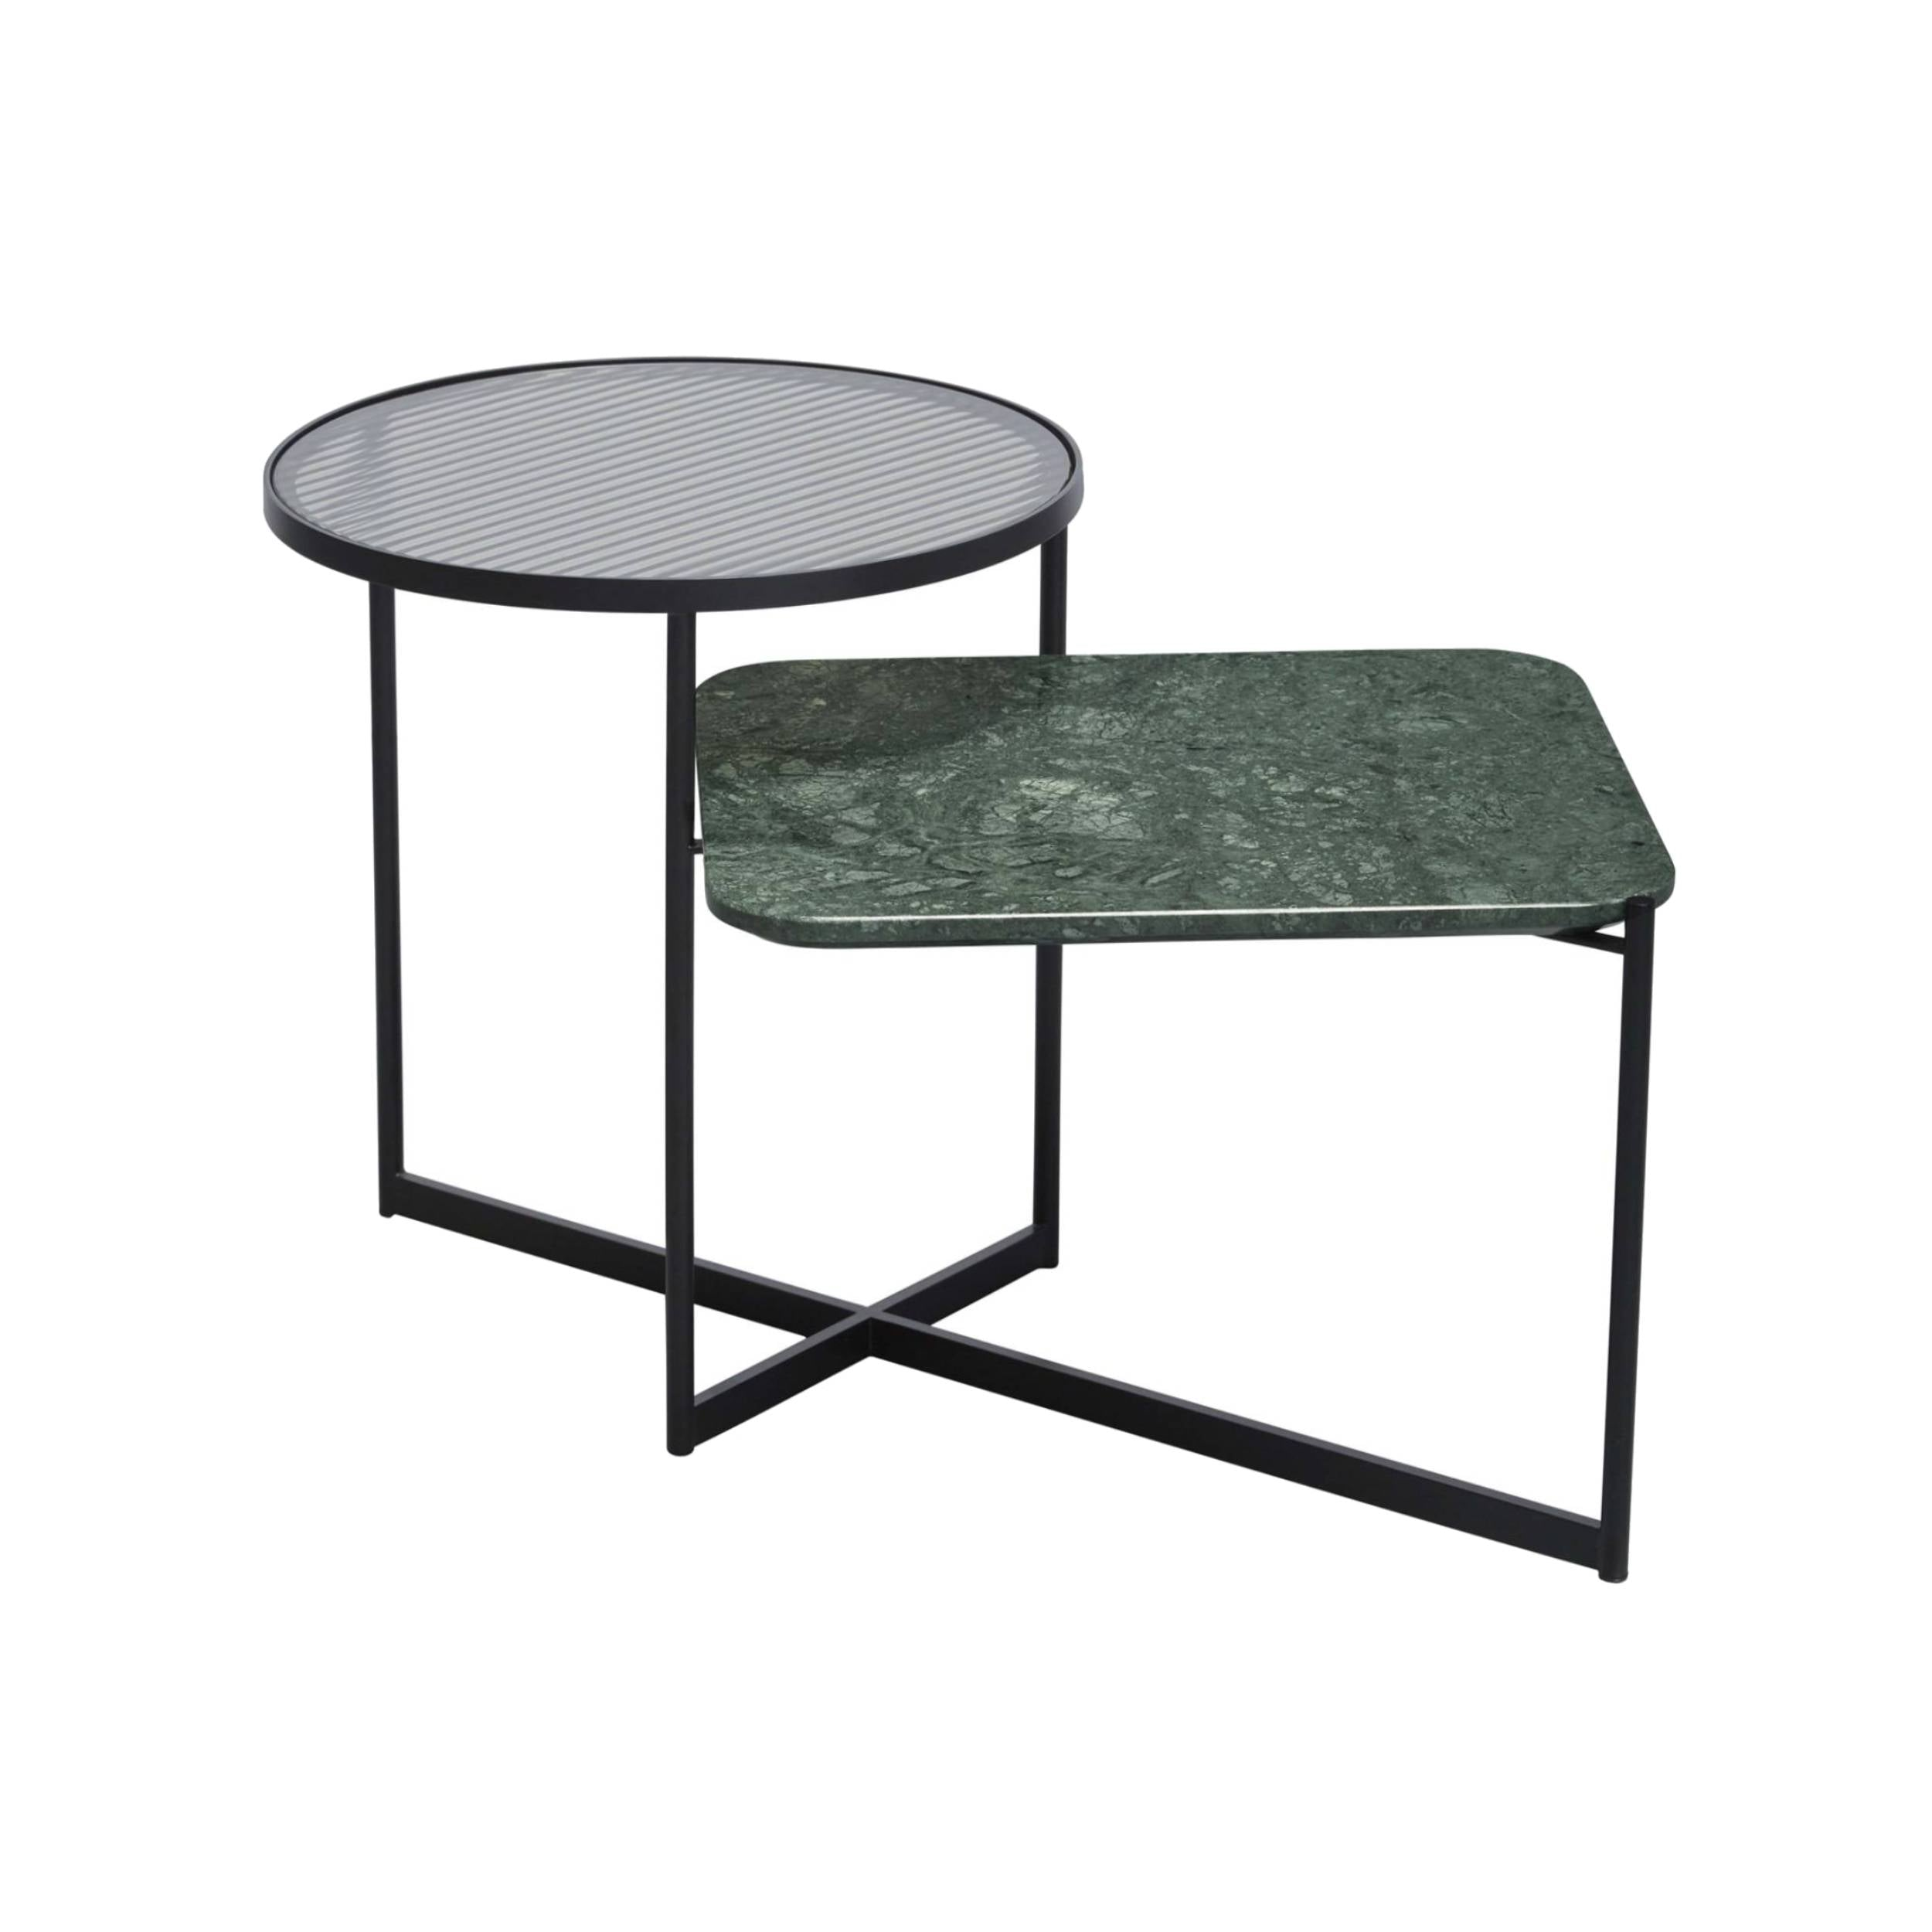 Mohana Side Table Medium: Black + Fluted Glass + Green Marble